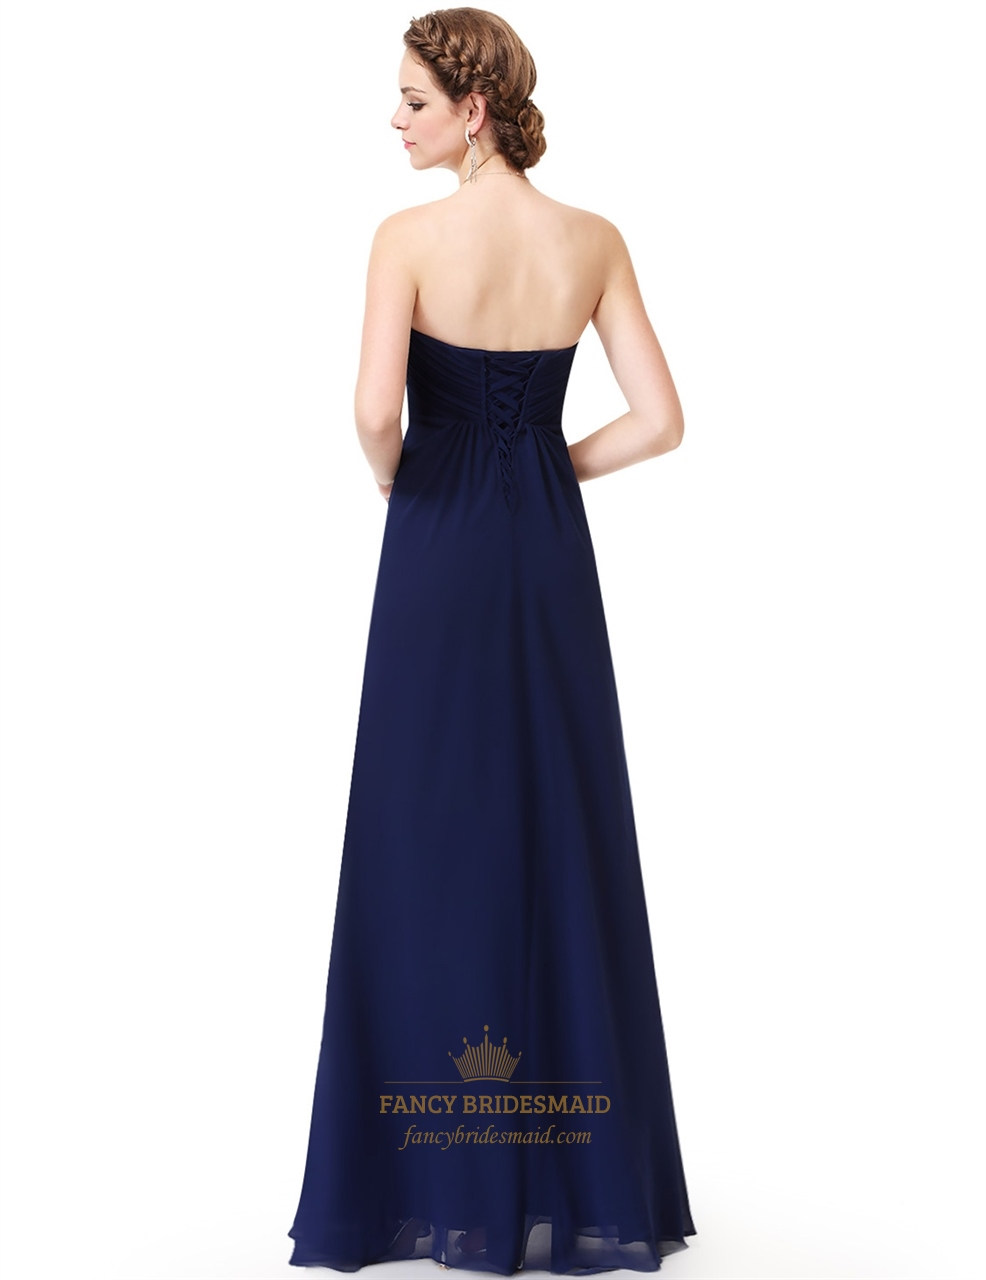 c2152e8e50fb Navy Blue Strapless A-Line Long Ruched Chiffon Prom Dress With Flower